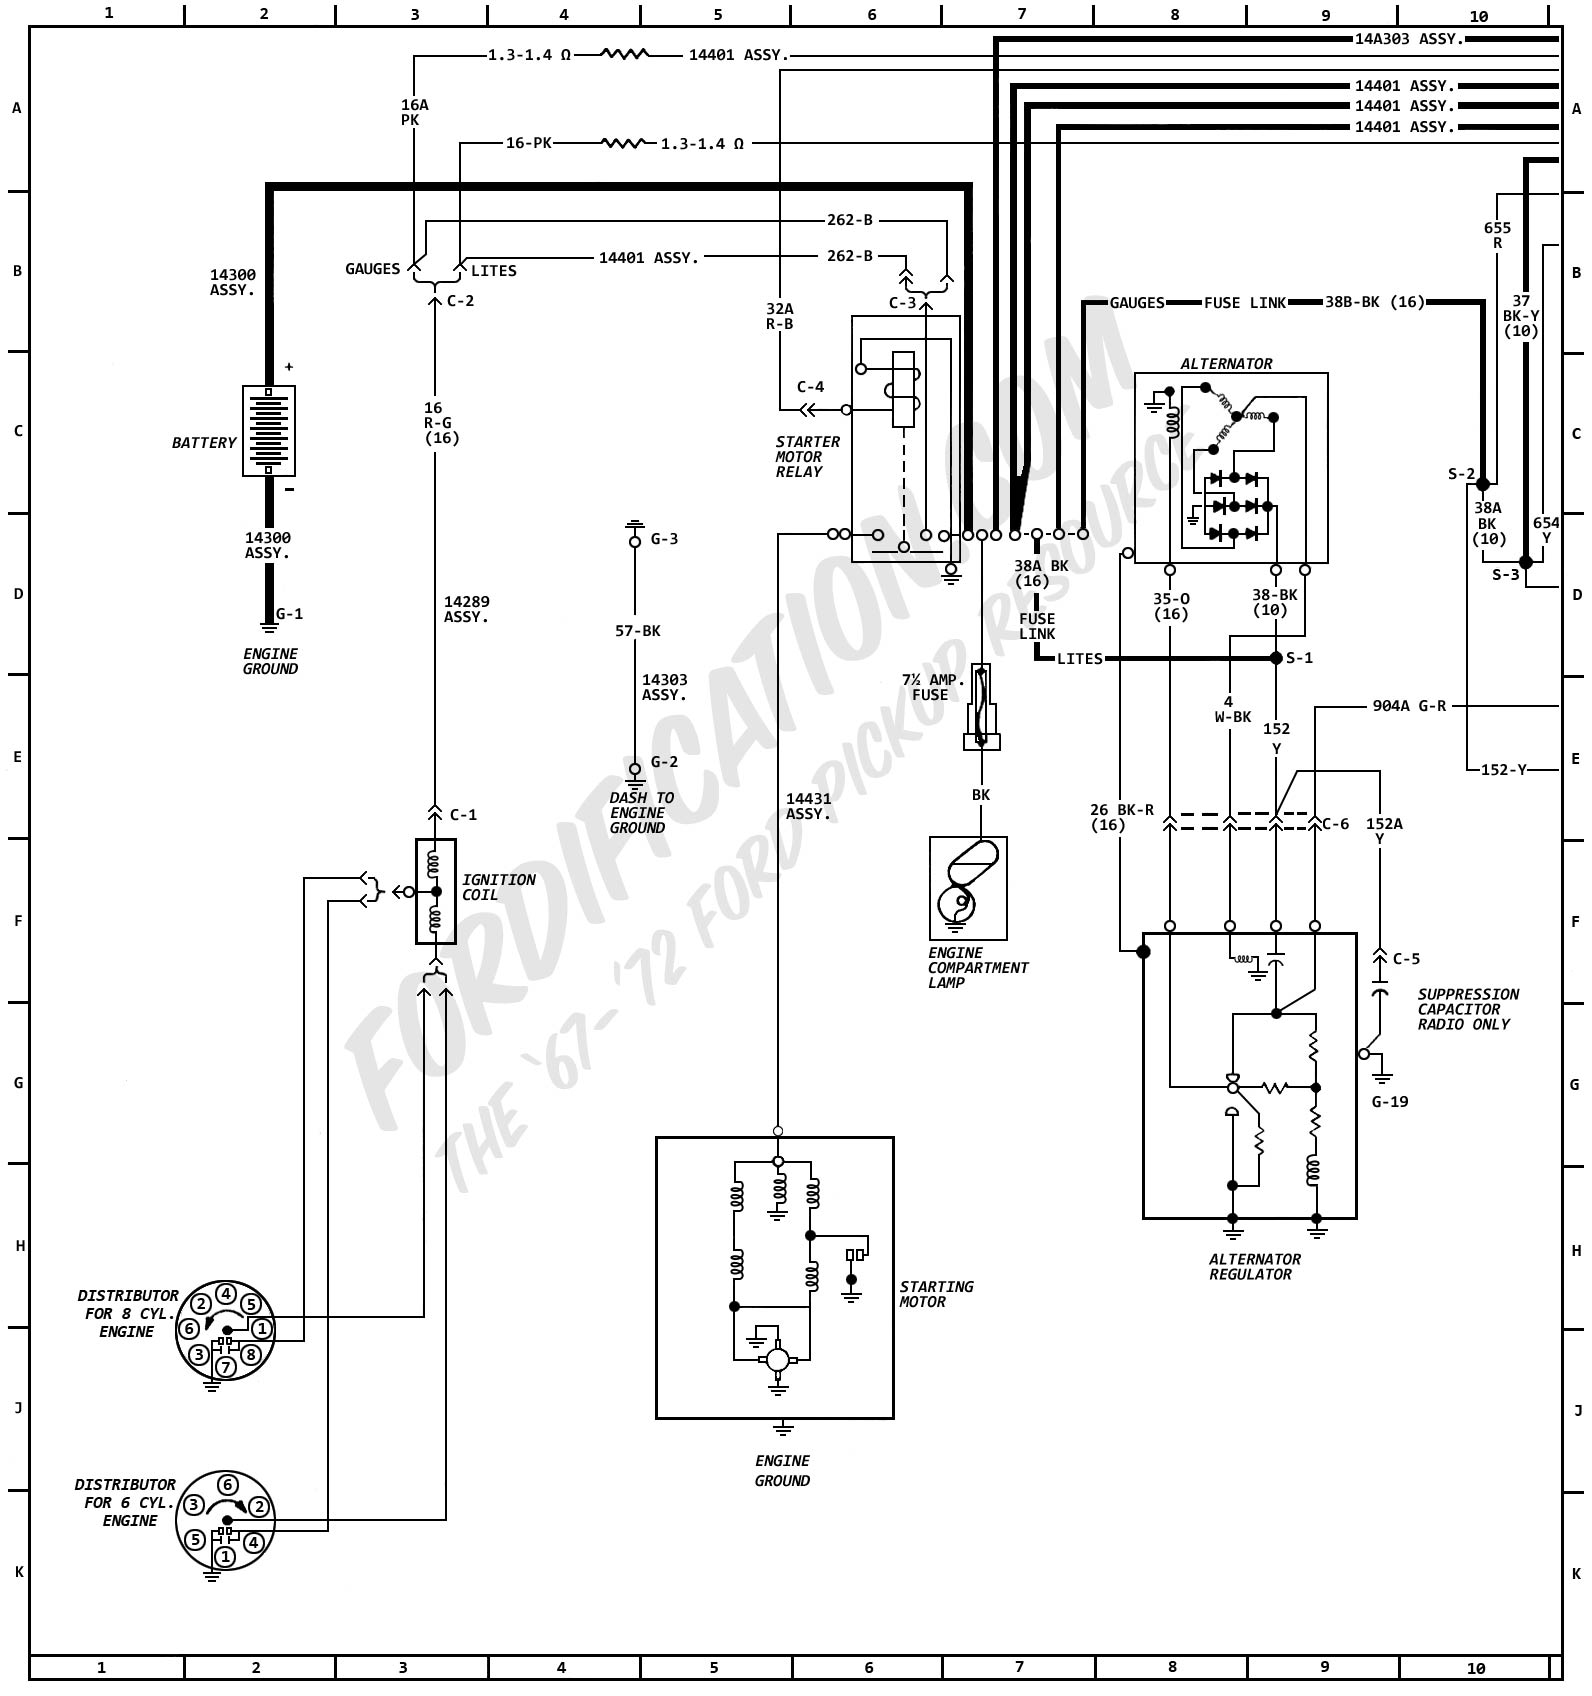 1972MasterWiring_01 100 [ wiring diagram master switch ] boat wiring diagram 2002 Toyota Corolla Ignition Switch at gsmx.co